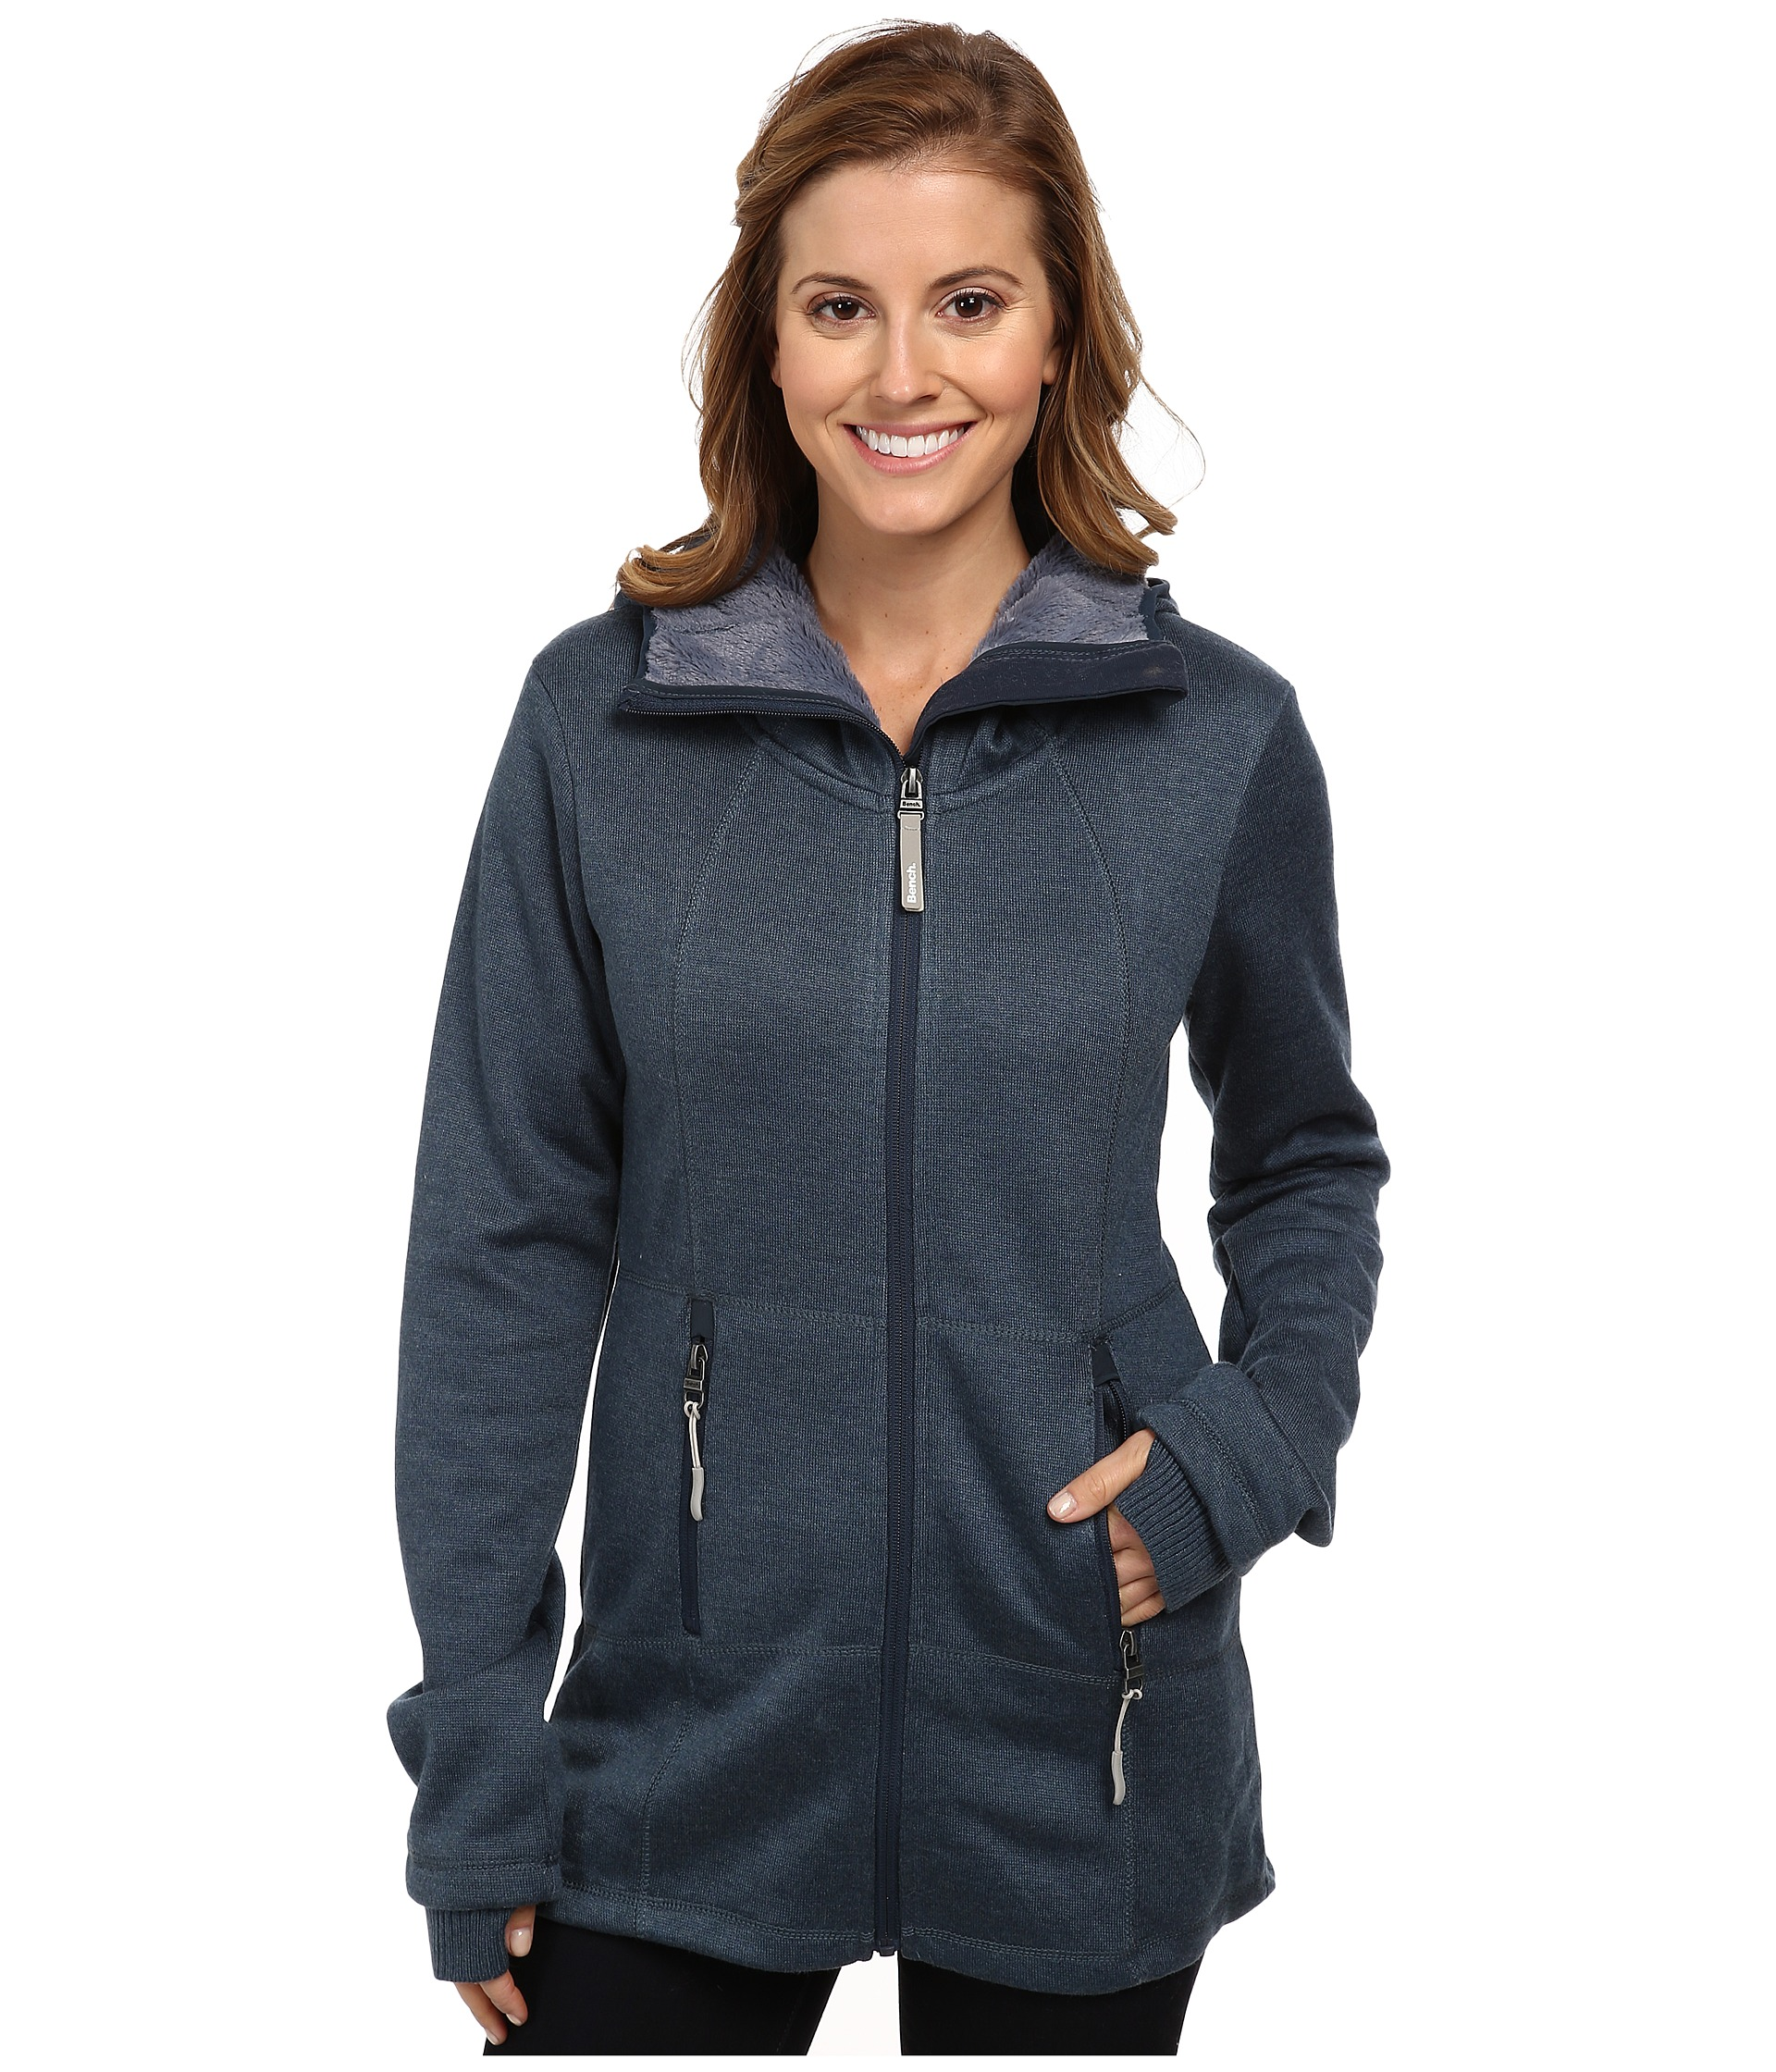 Bench Thinlined Zip Thru Hoodie Clothing Shipped Free At Zappos